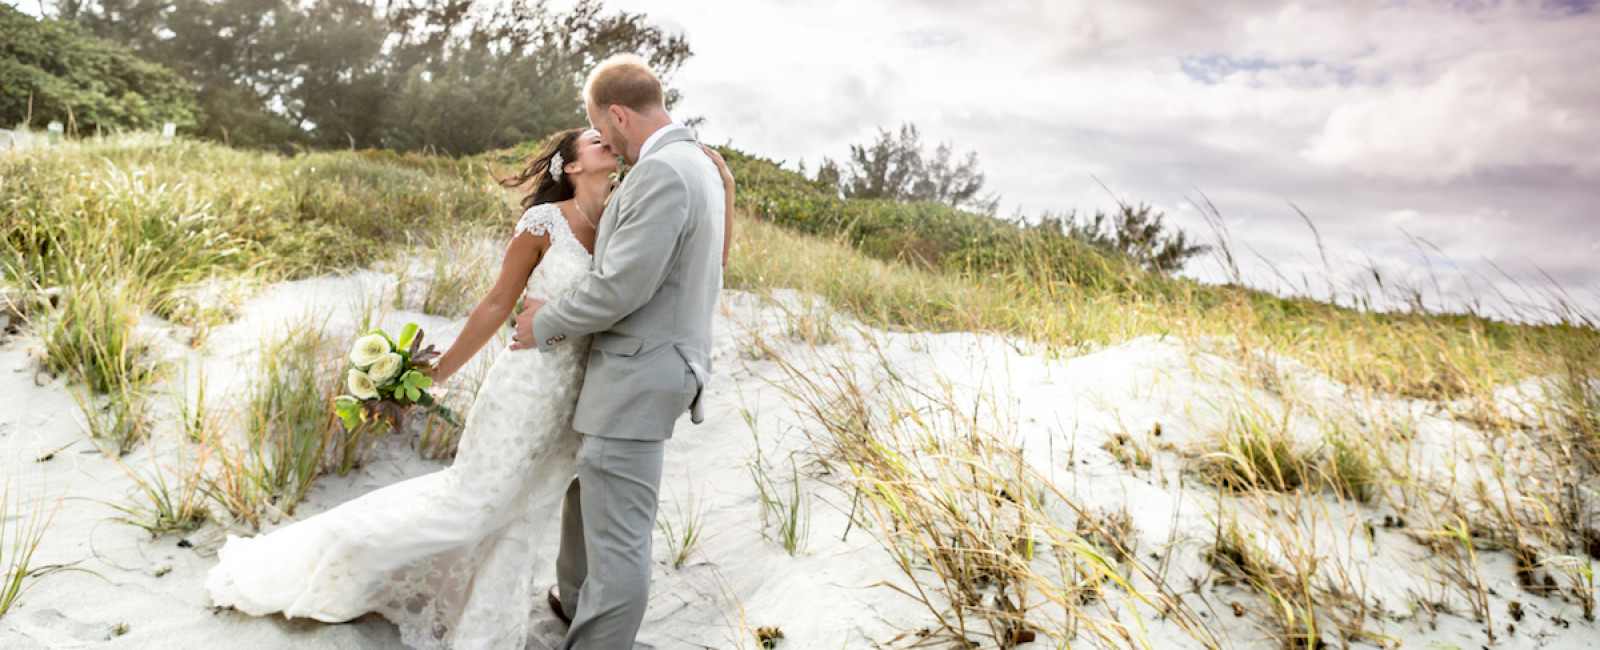 The best Miami Wedding Photographer in South Florida is Couture Bridal Photography. Image of Bride and groom in an embrace after a beach wedding ceremony